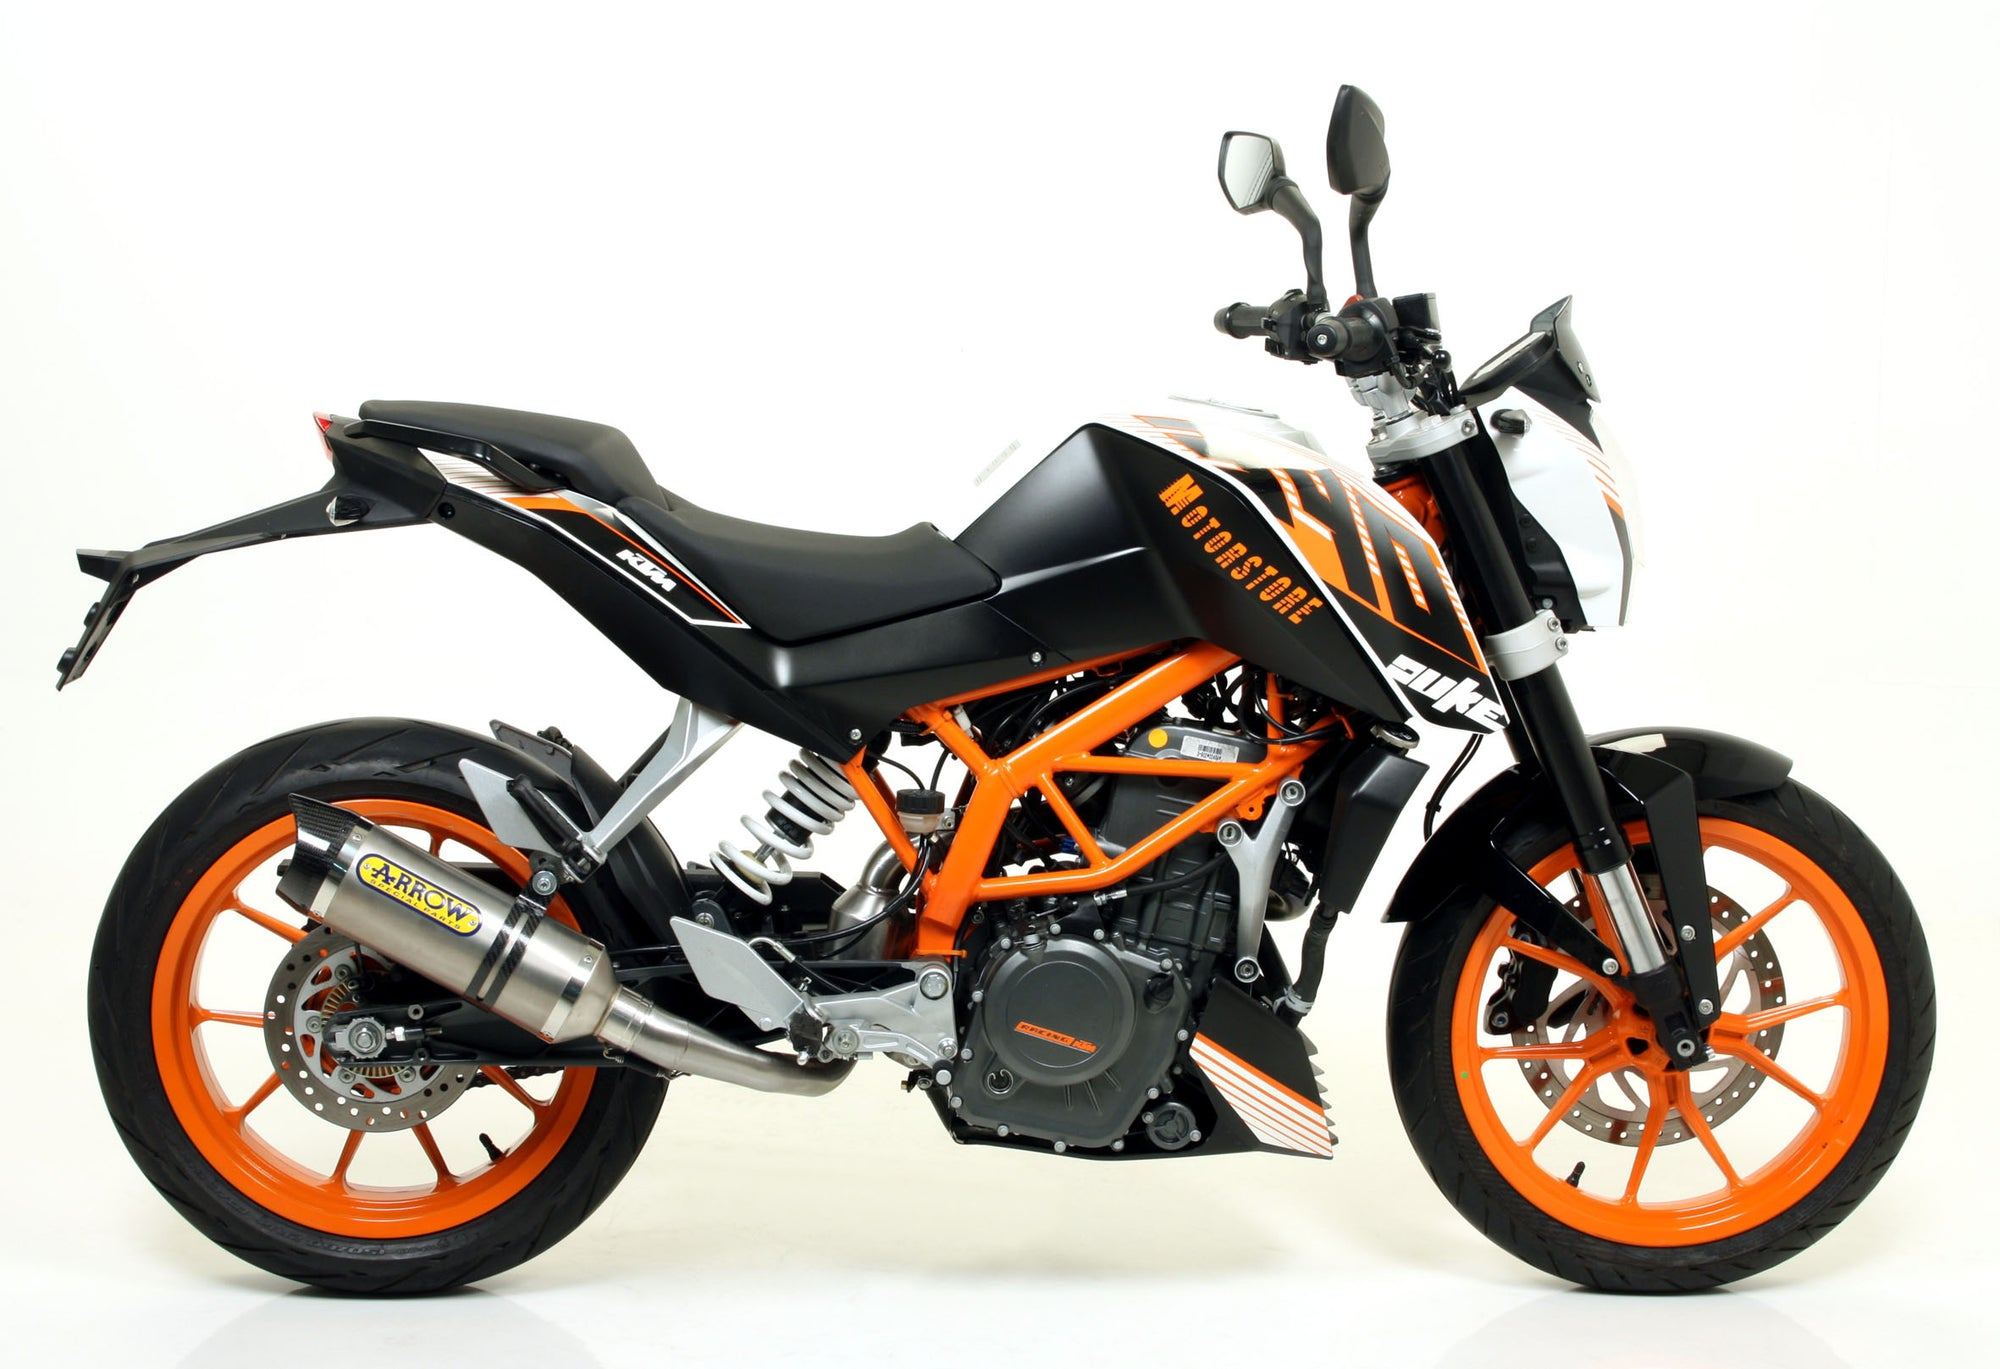 Arrow Street Thunder Slip-On KTM 390 Duke 2013-2016